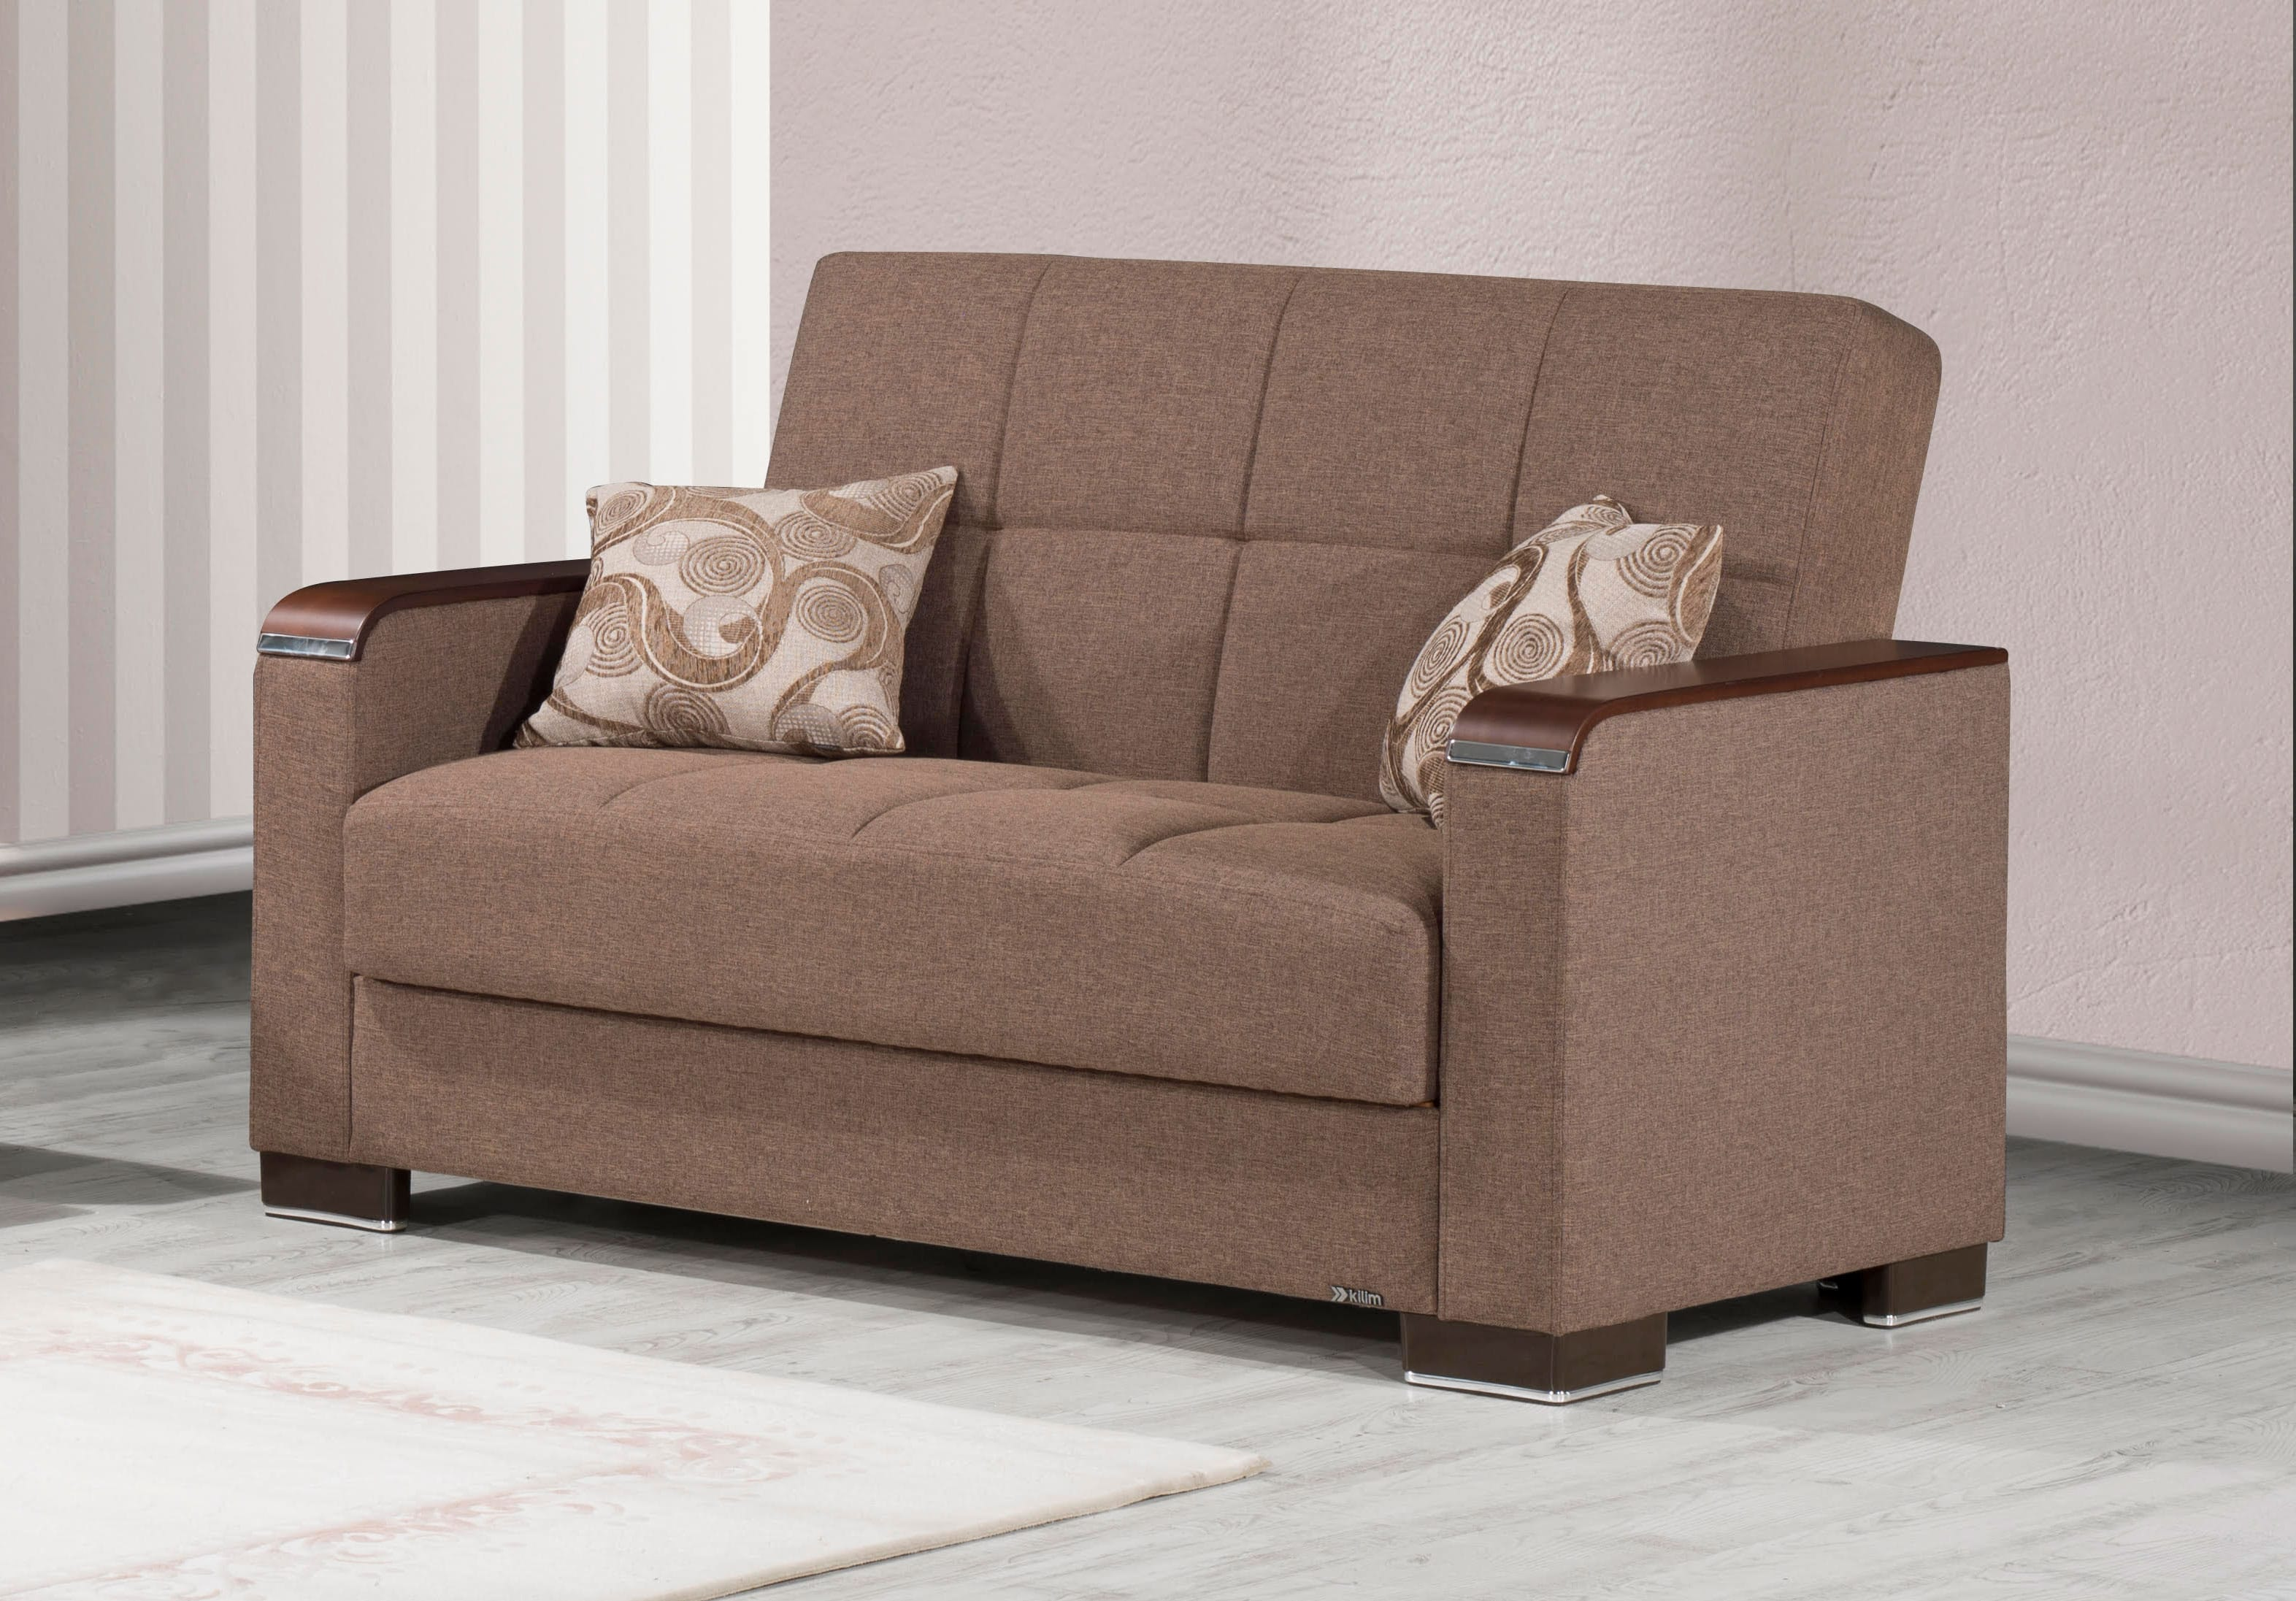 Armada X Light Brown Convertible Loveseat by Casamode